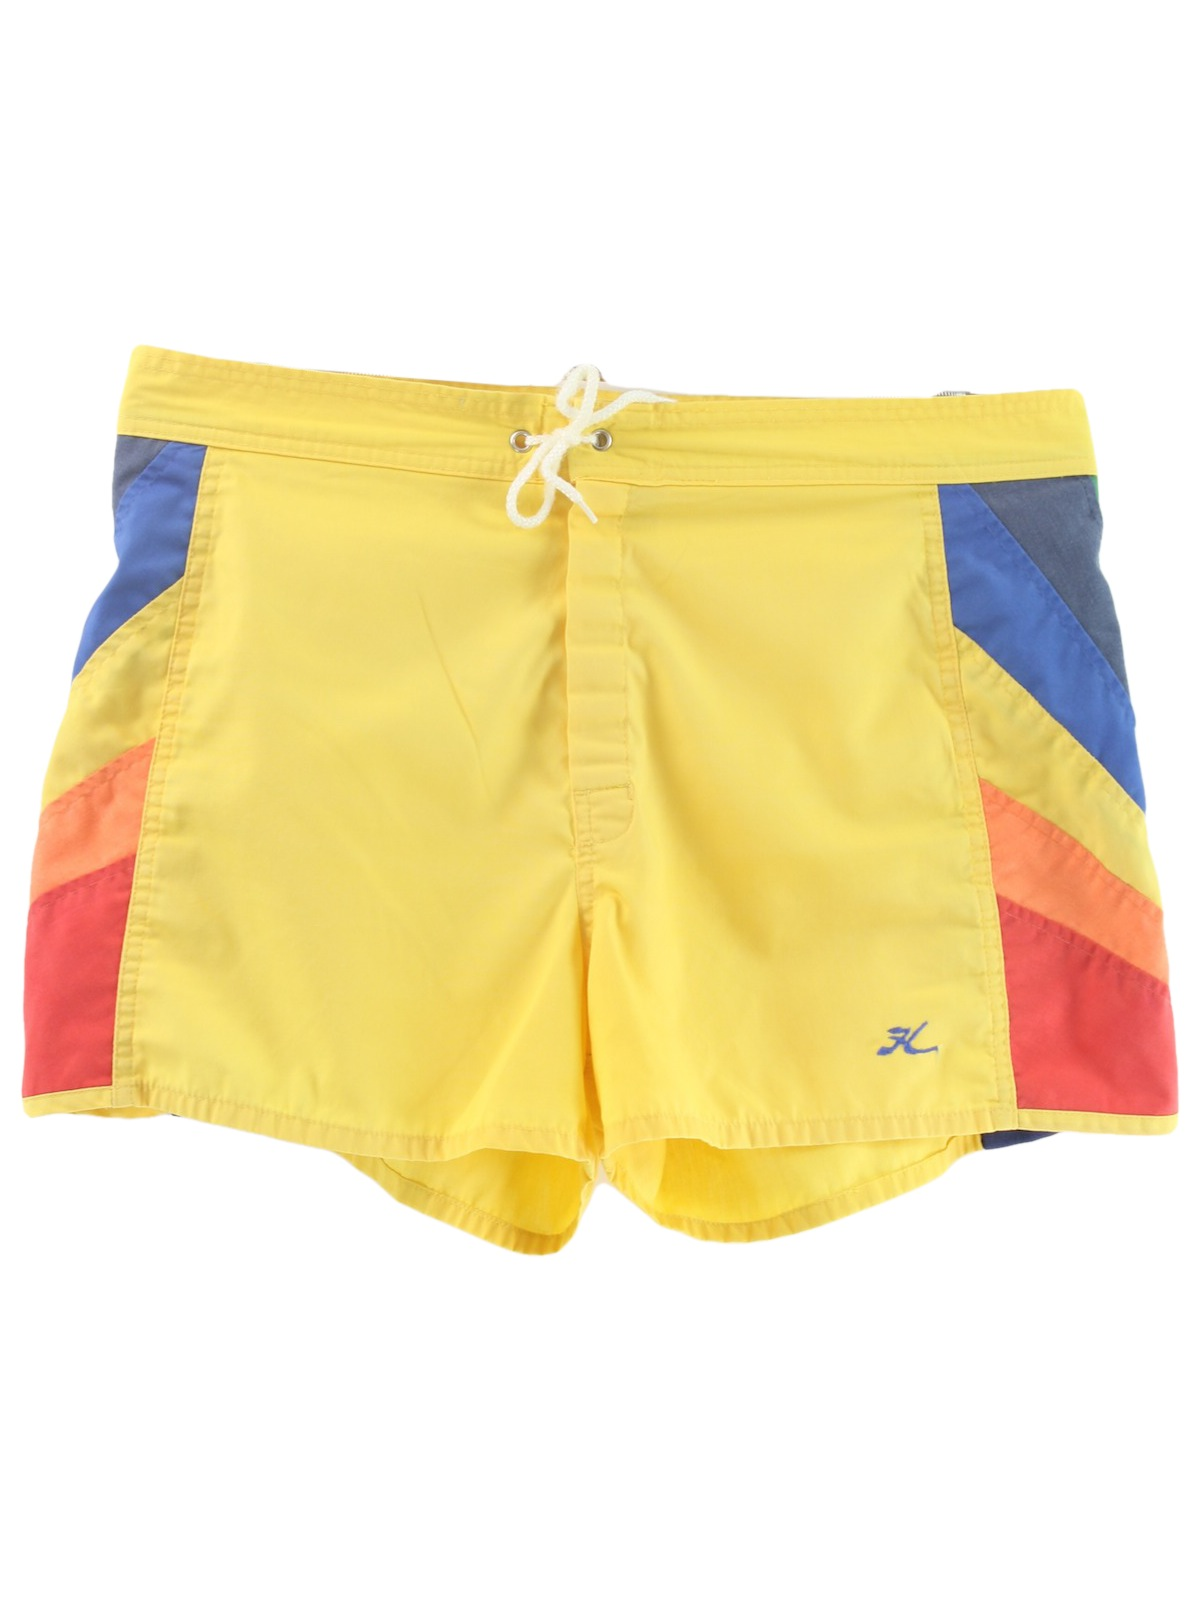 2f68d56dd2d24 Retro 1980s Shorts: 80s -Hobie- Mens yellow background with shaded ...